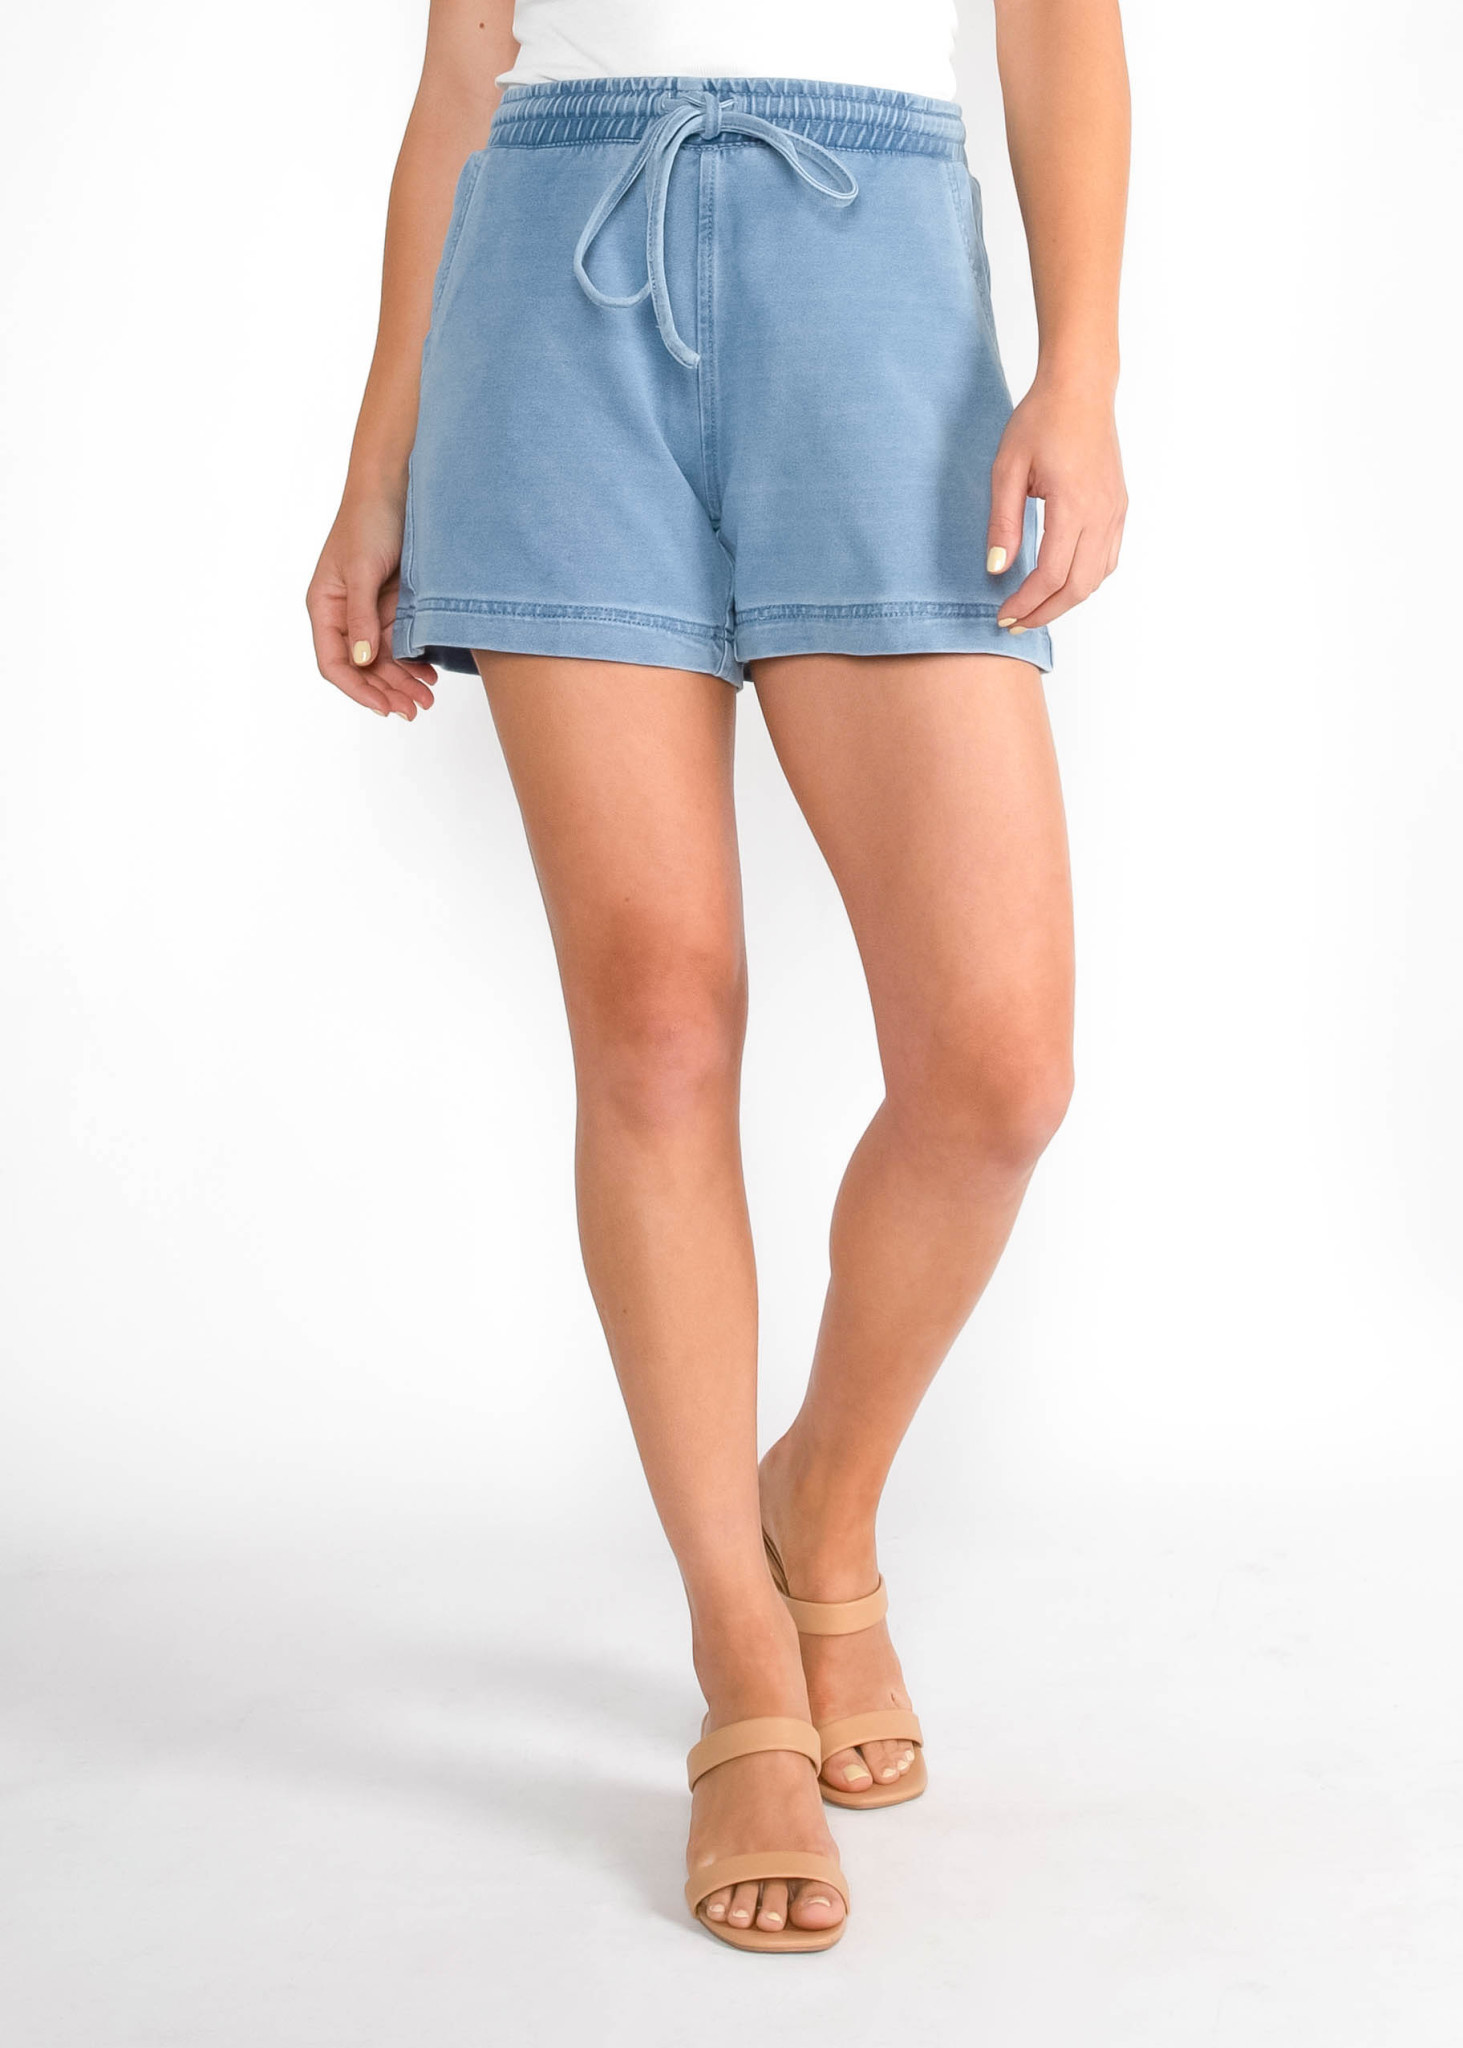 BETTER BY THE SEA SHORTS